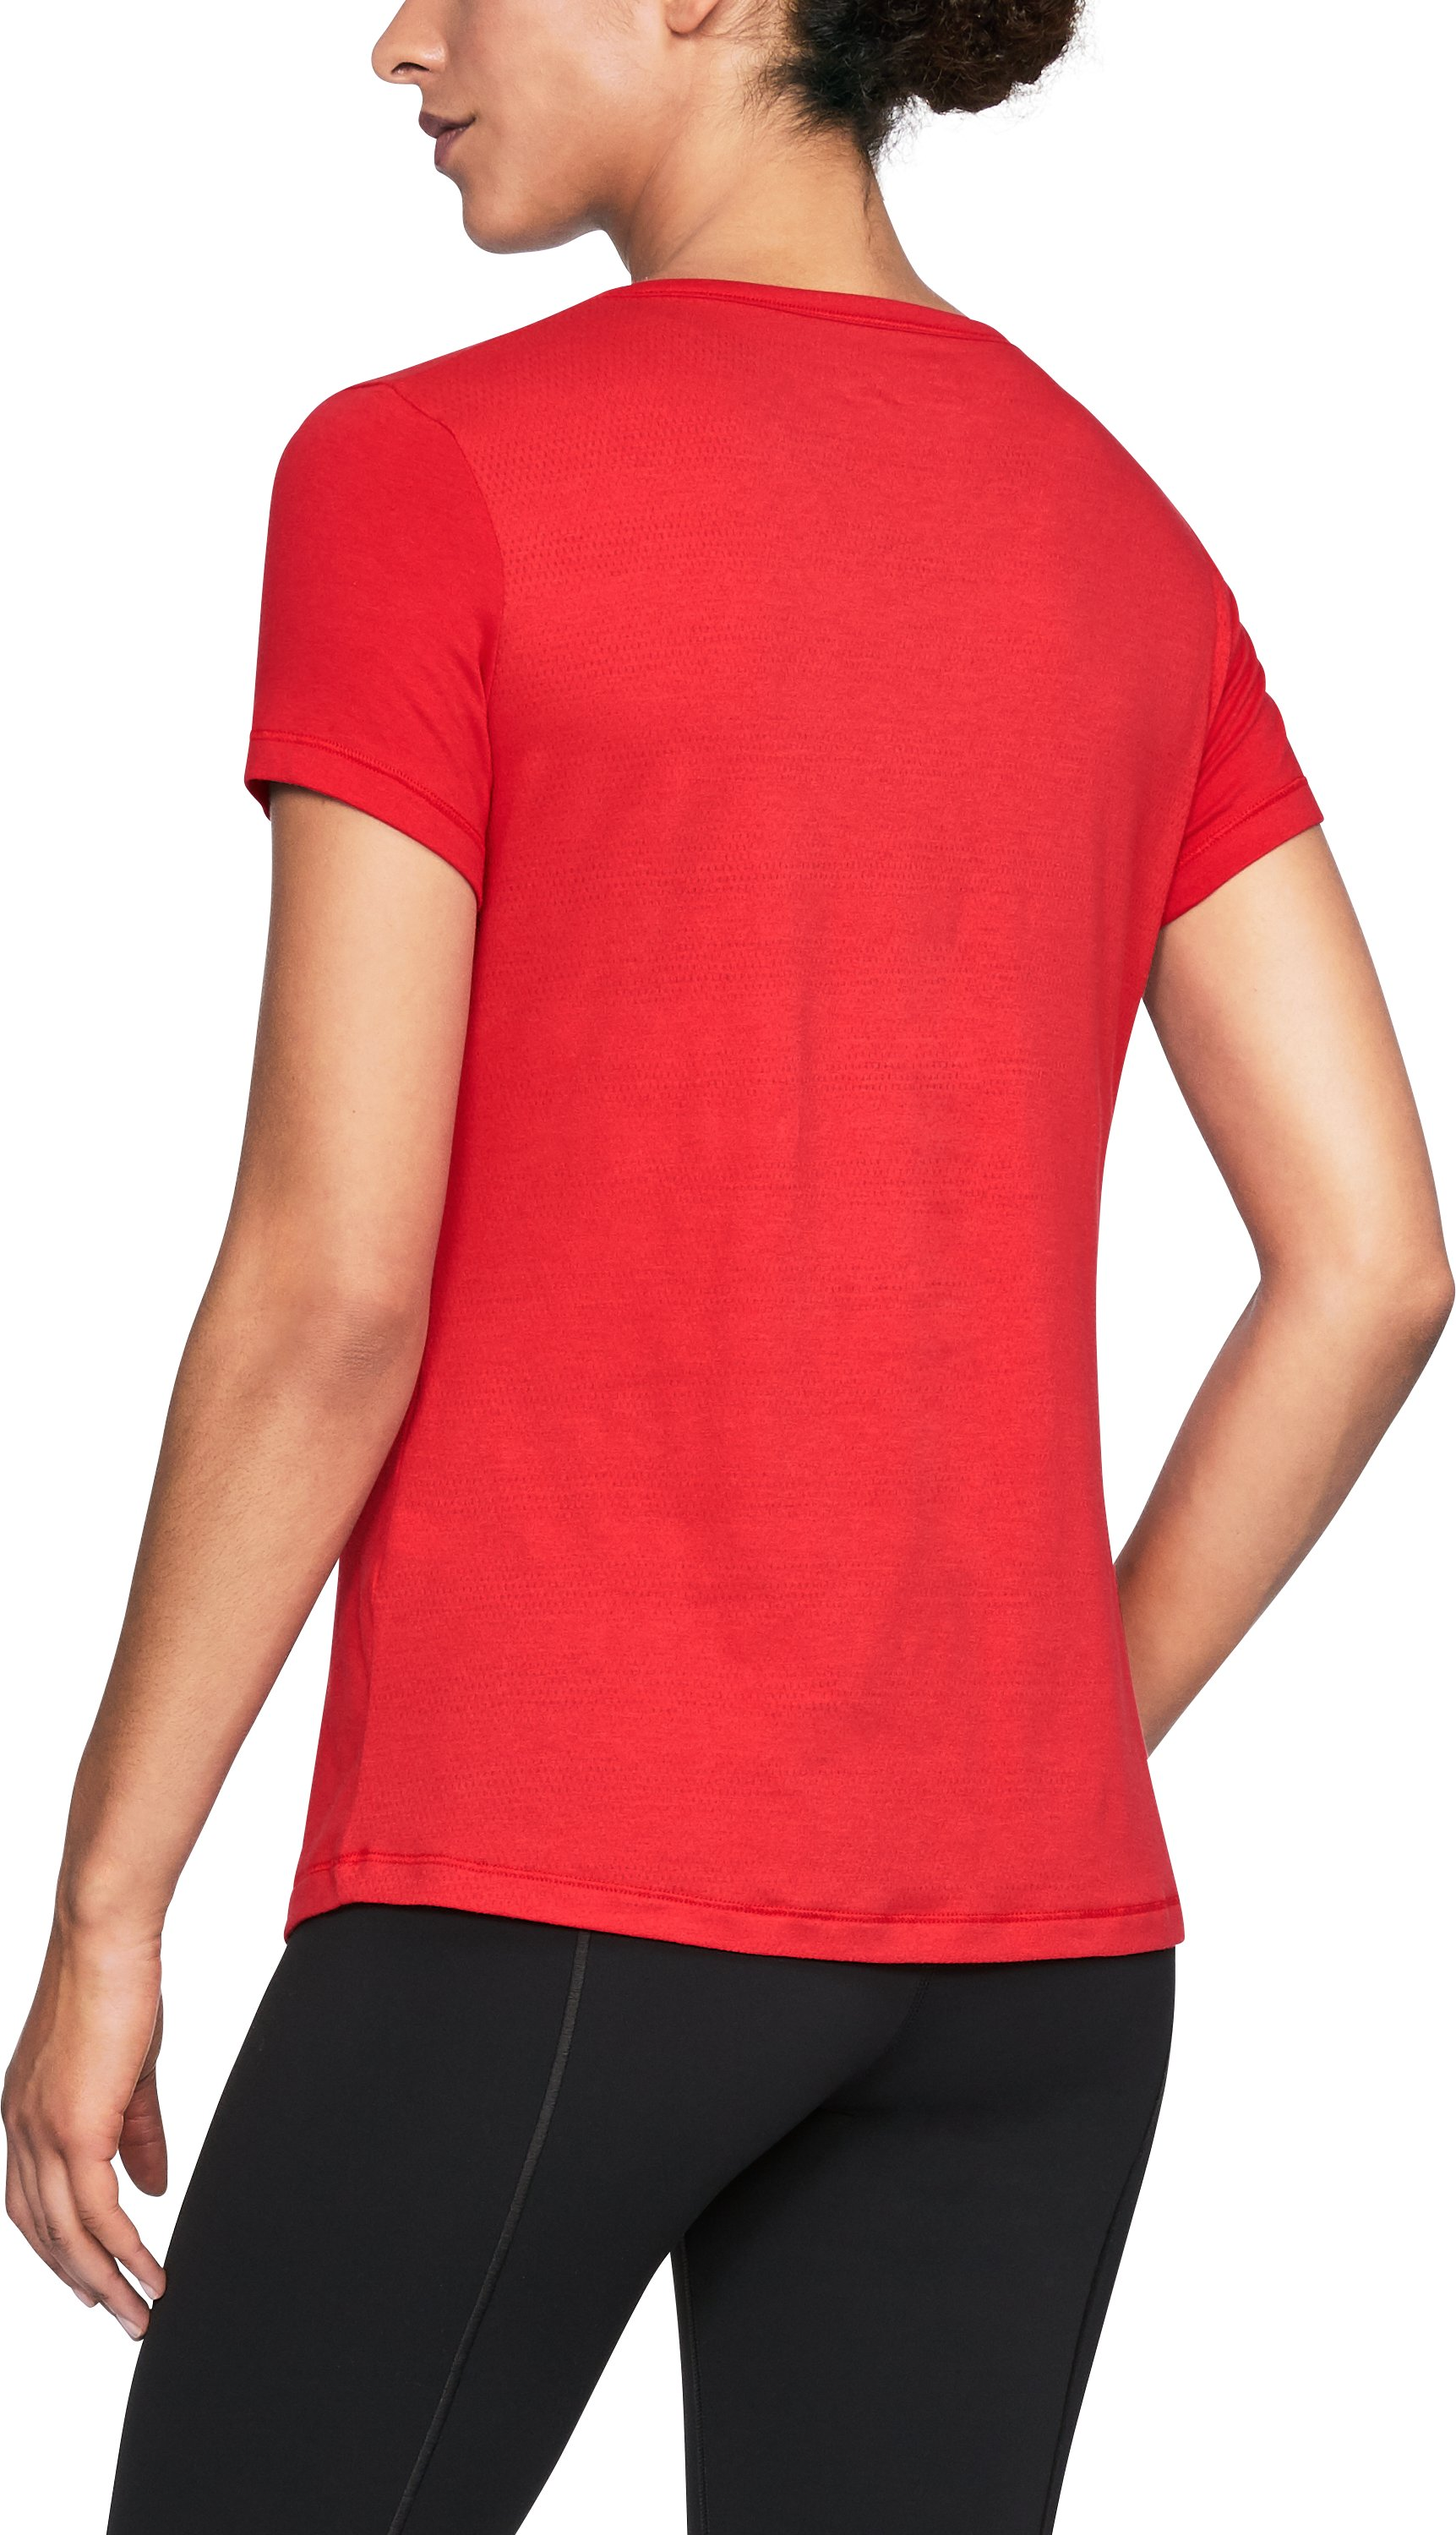 Women's Cincinnati UA Vent Short Sleeve T-Shirt-Shirt, Red, undefined